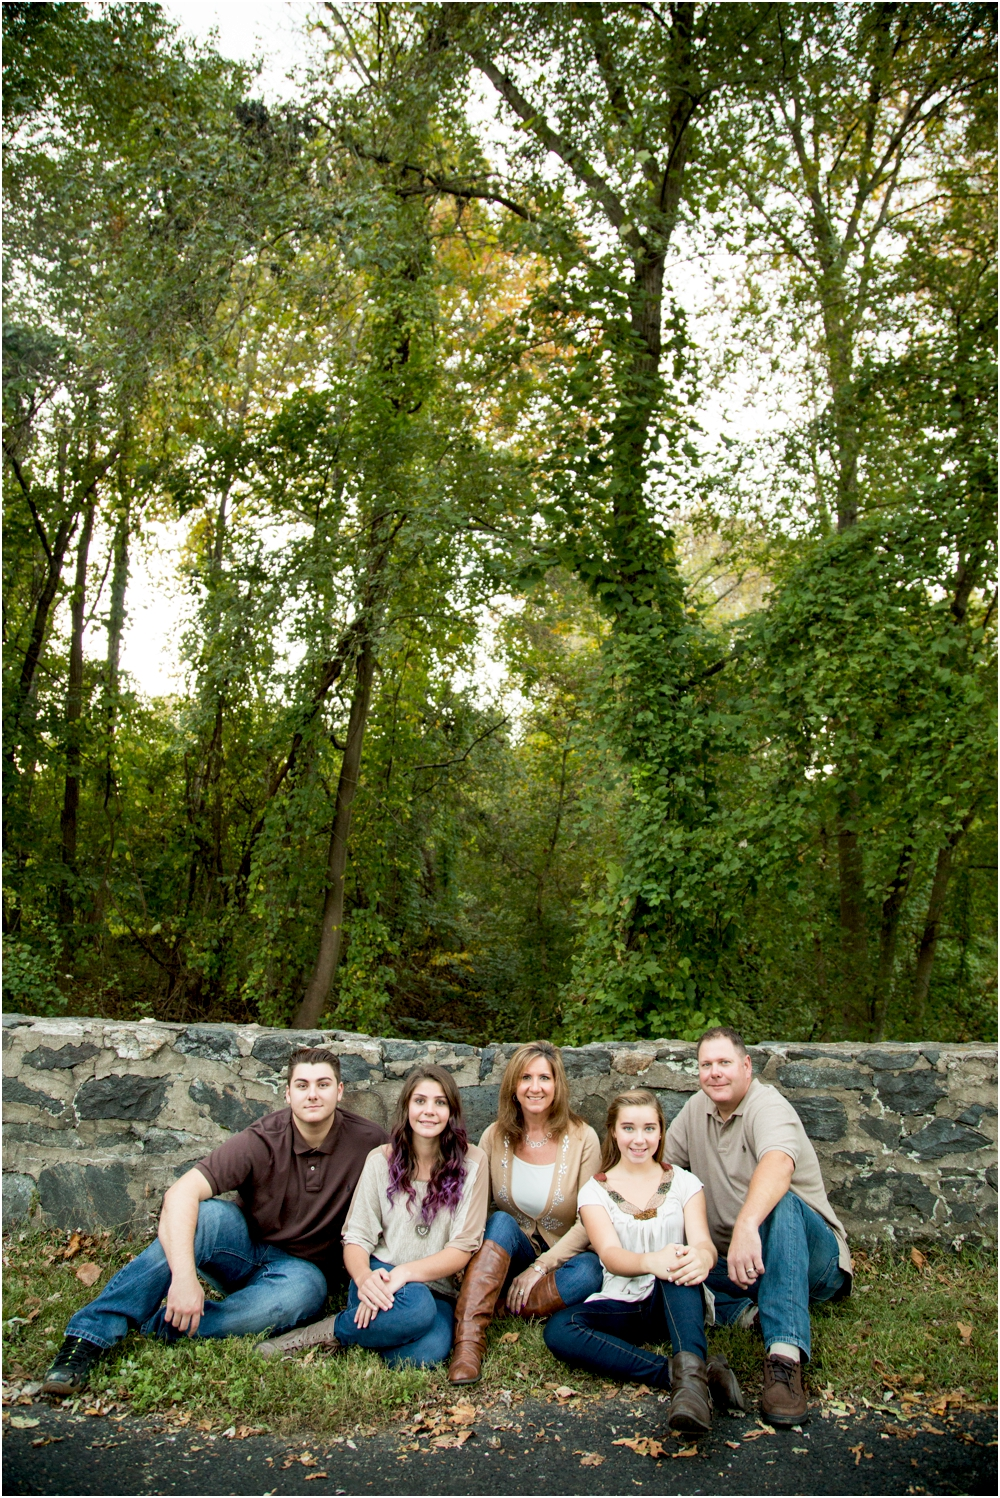 meseke+beaver+marino+family+session+living+radiant+photography+photos+patapsco+state+park+stomped_0013.jpg